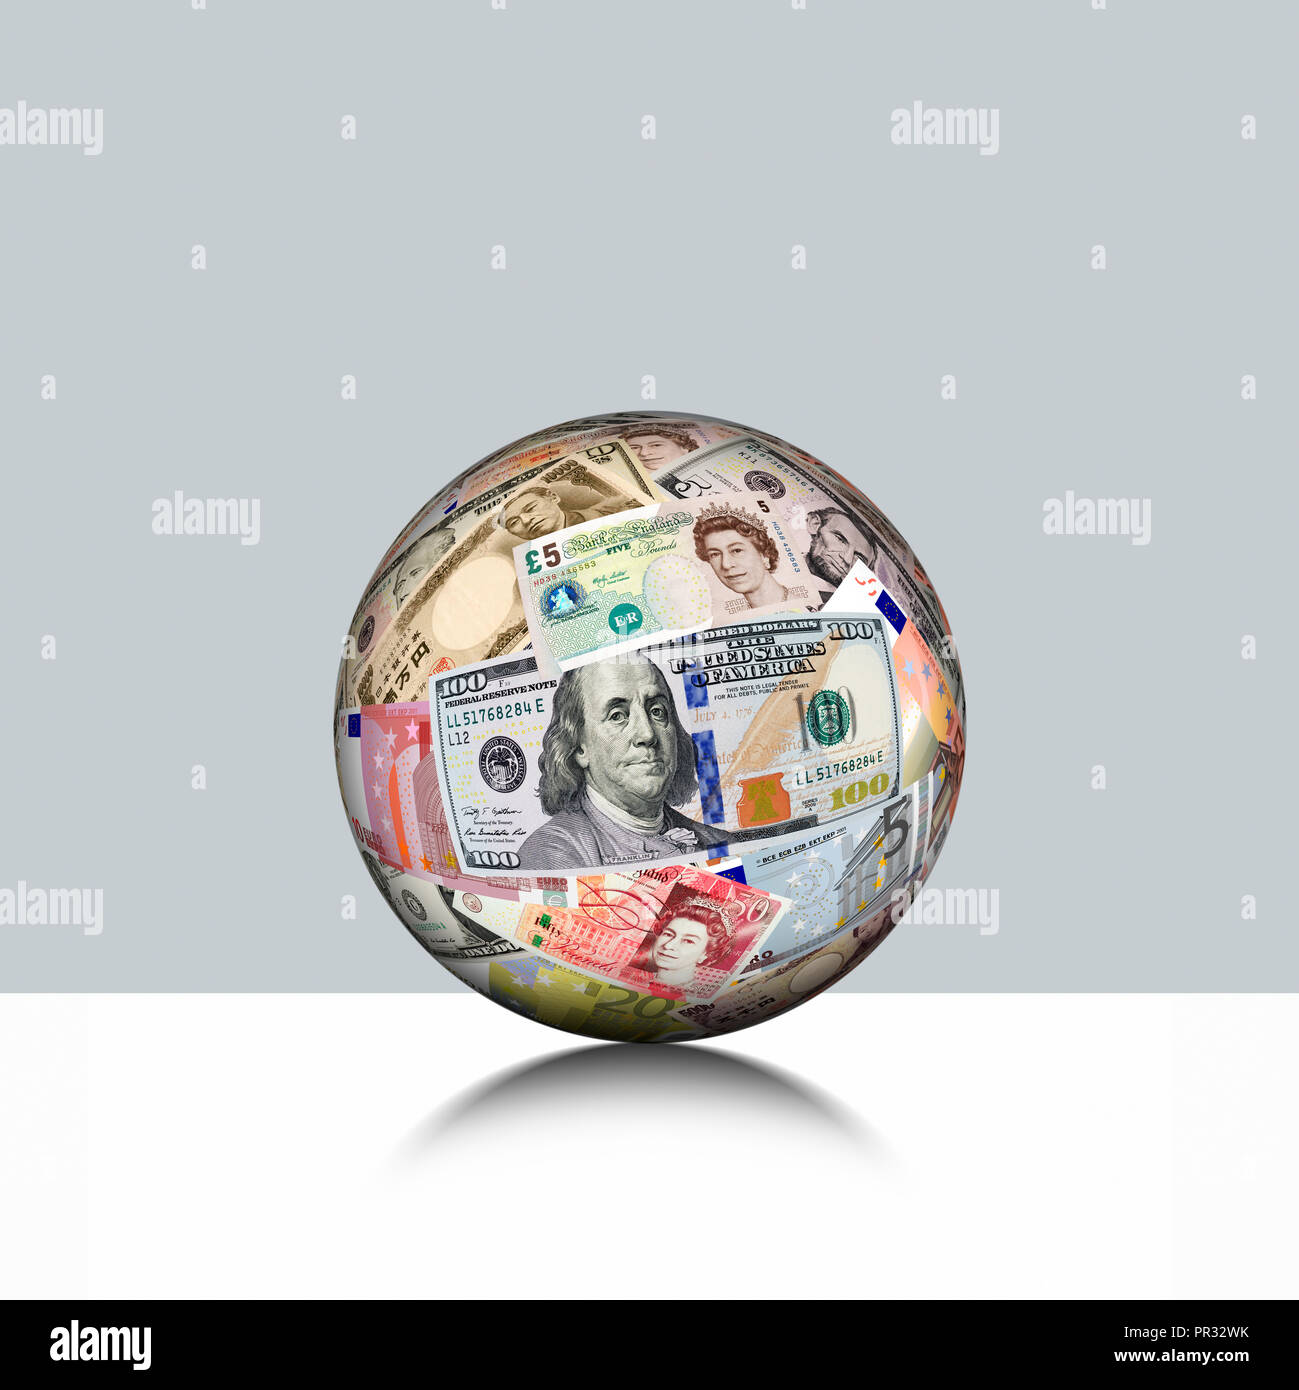 Global Currency, Ball Mede from International Currency - Stock Image